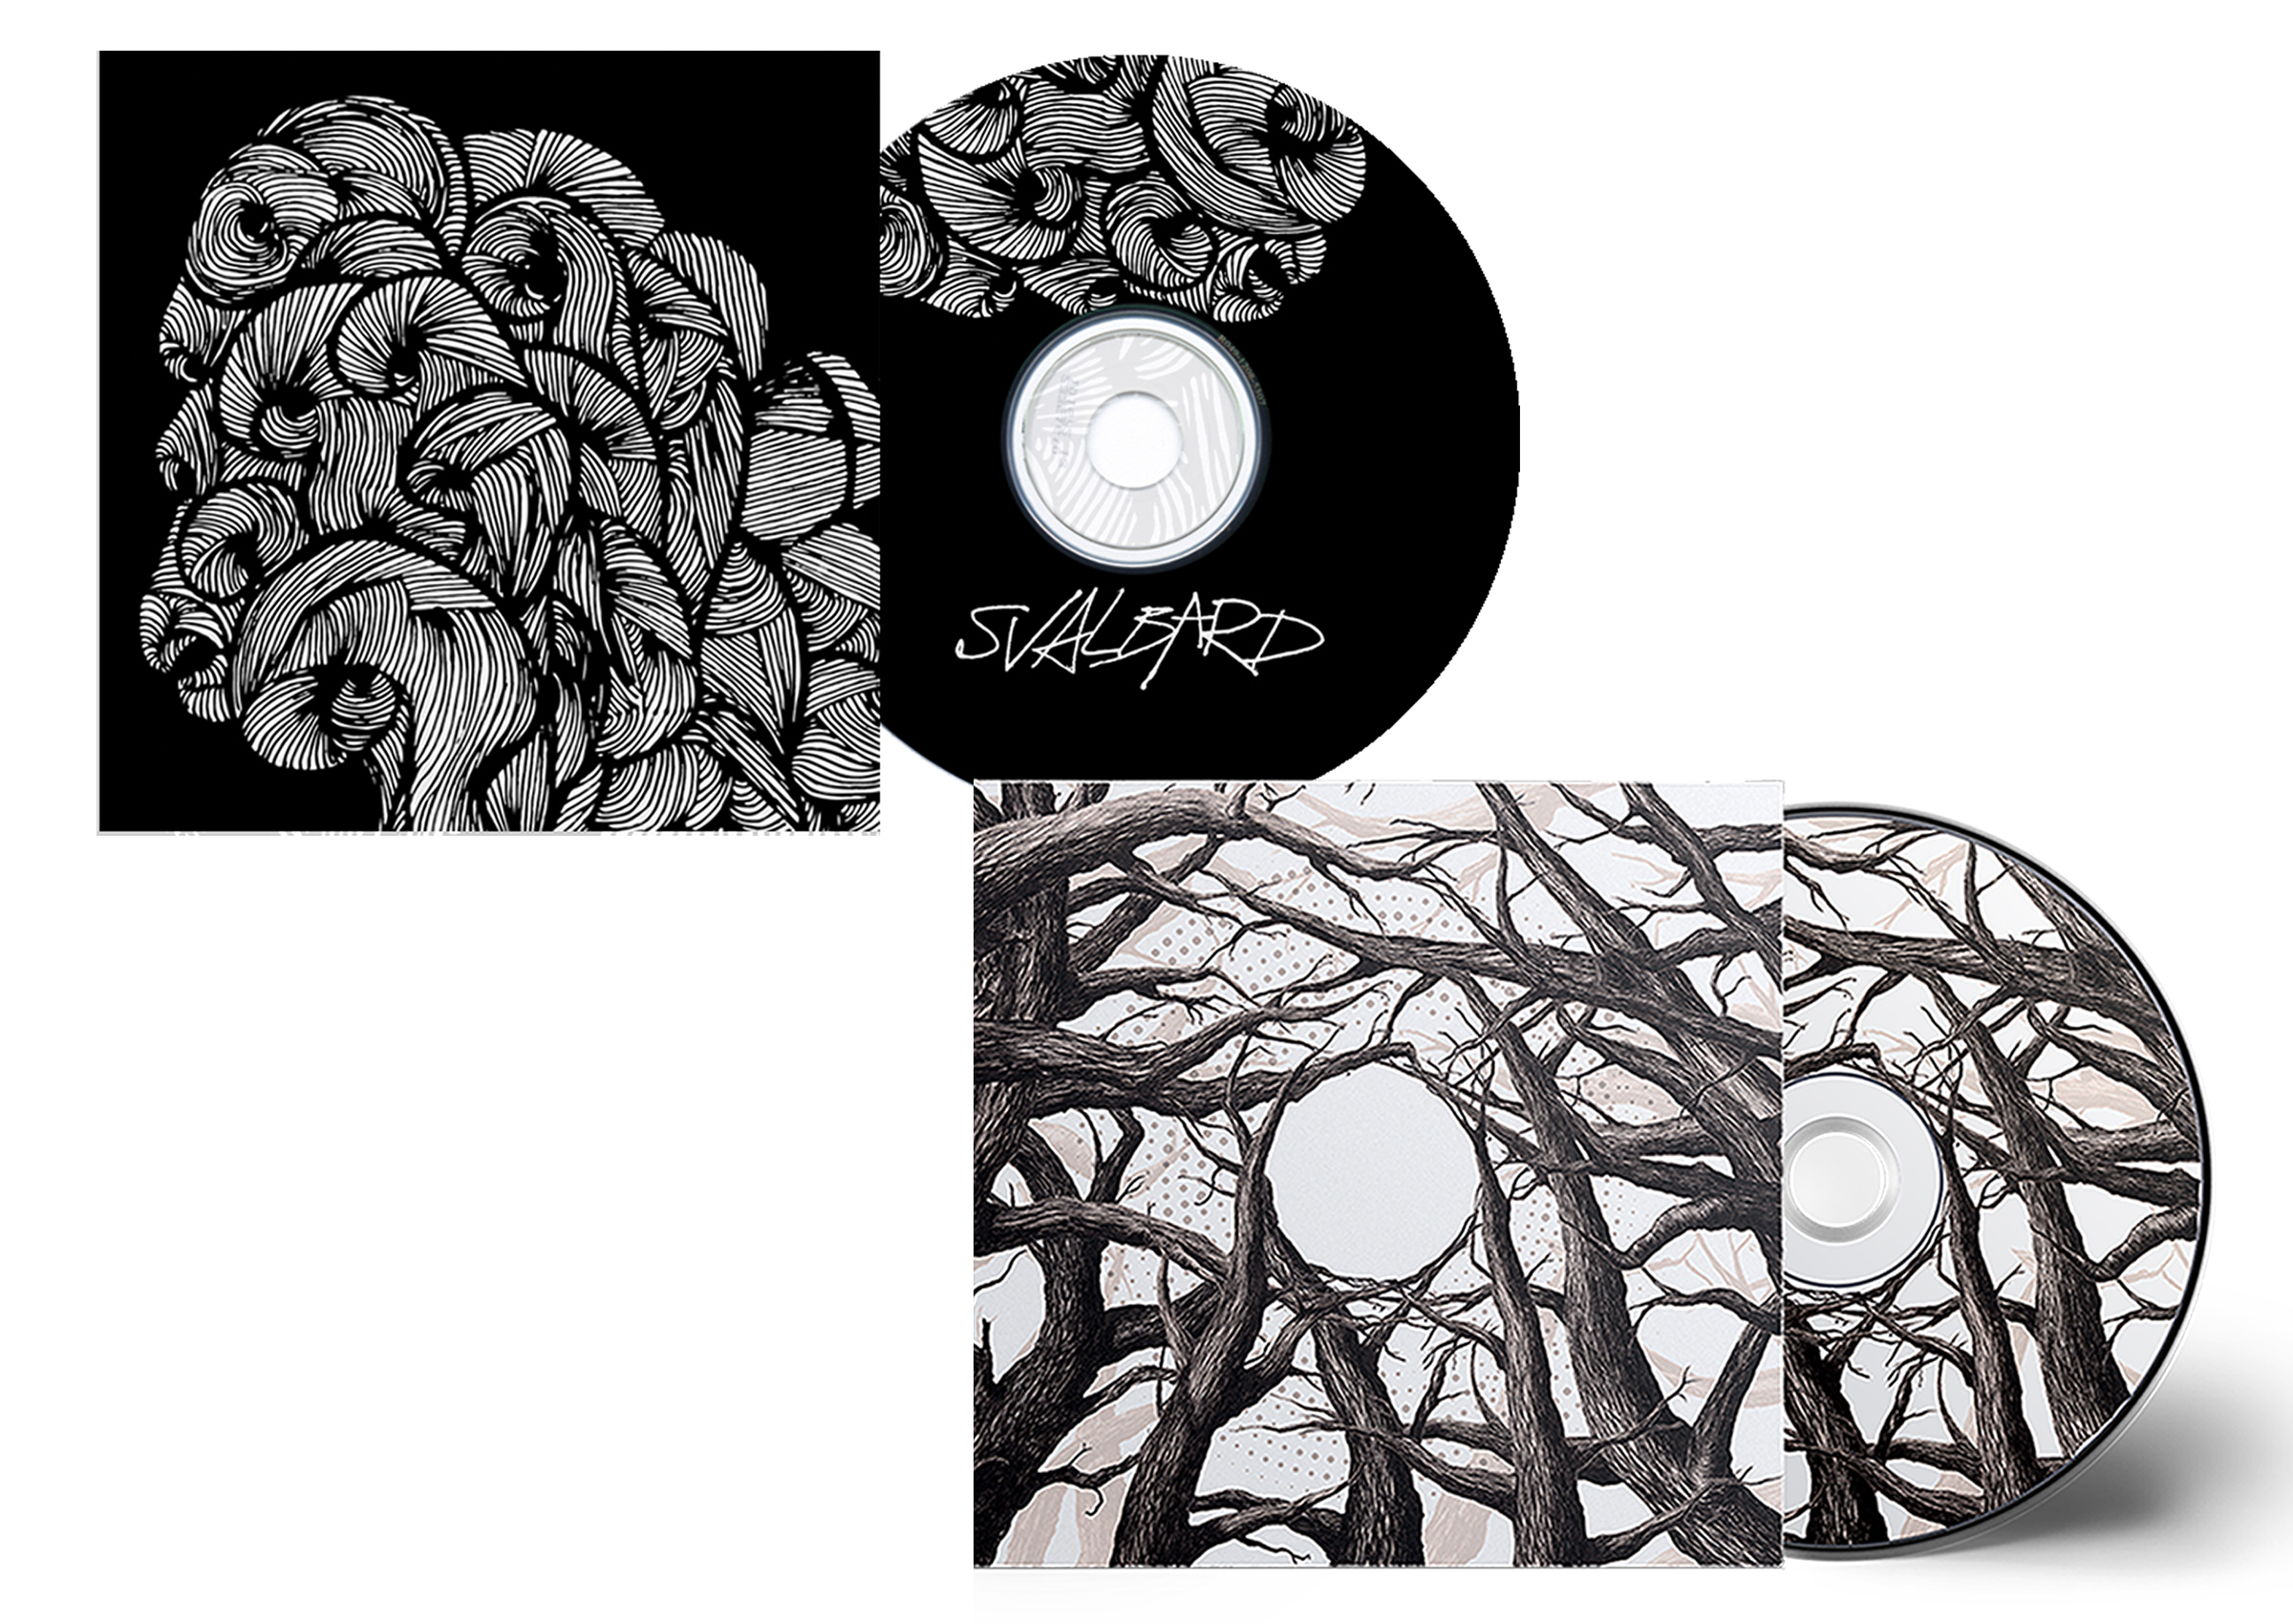 Svalbard - It's Hard To Have Hope CD + 'One day all...' CD PREORDER